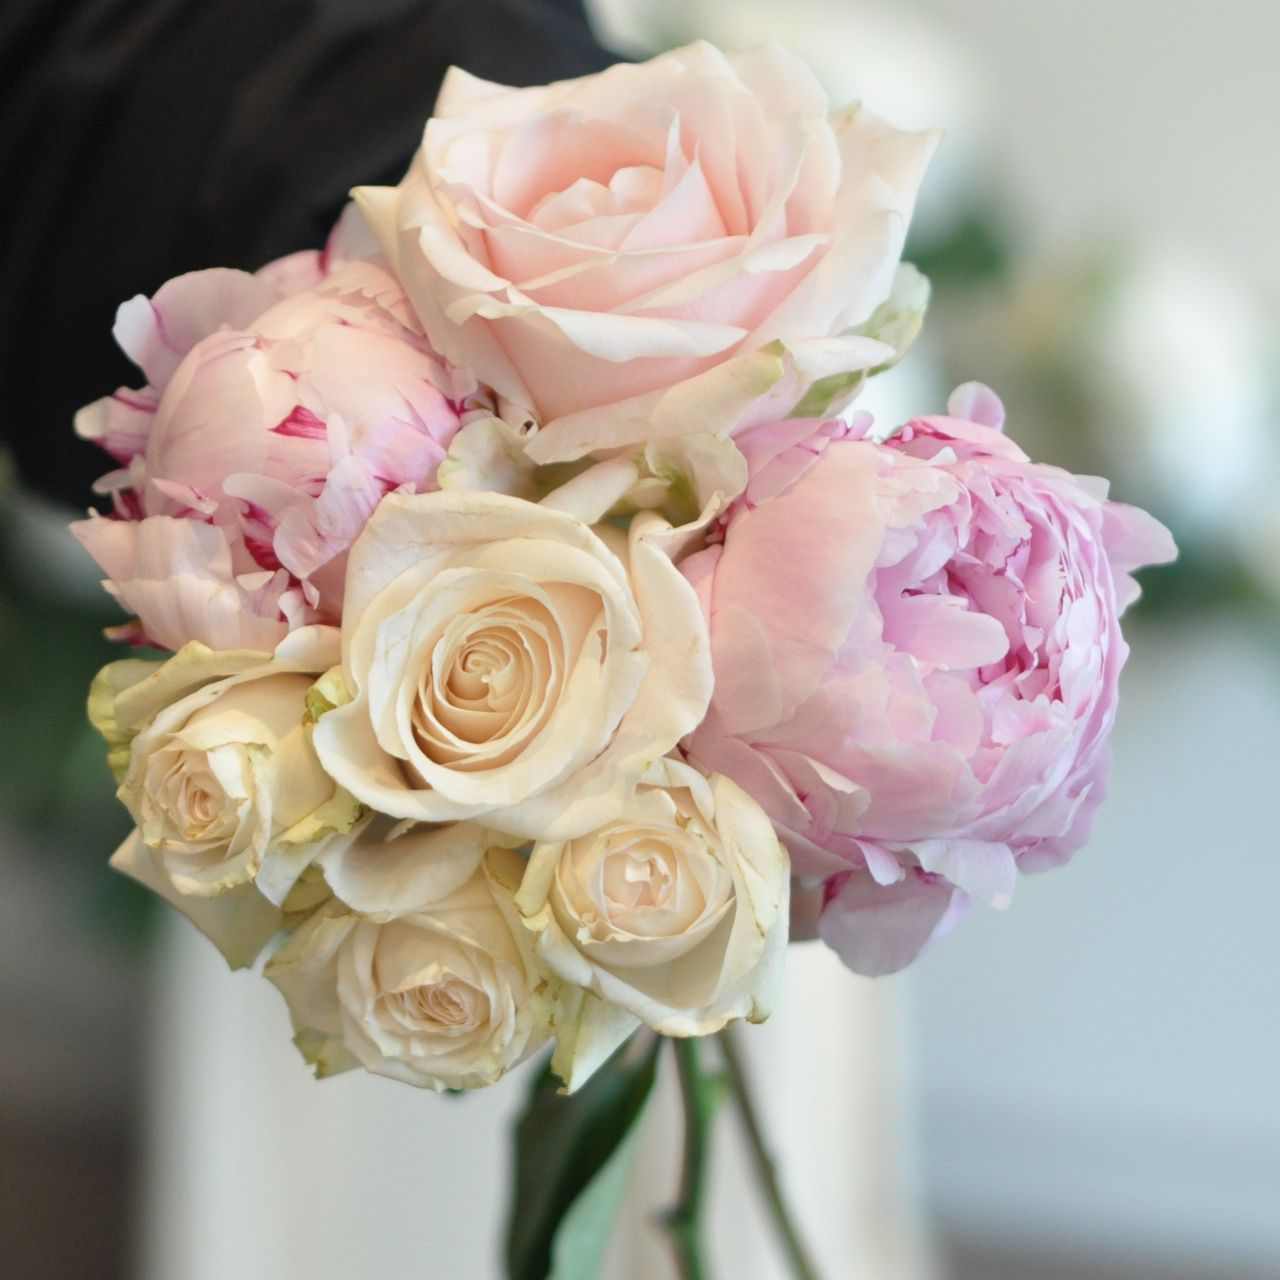 Flowers With Rounded Heads Will Create A Bouquet With A Classic Look